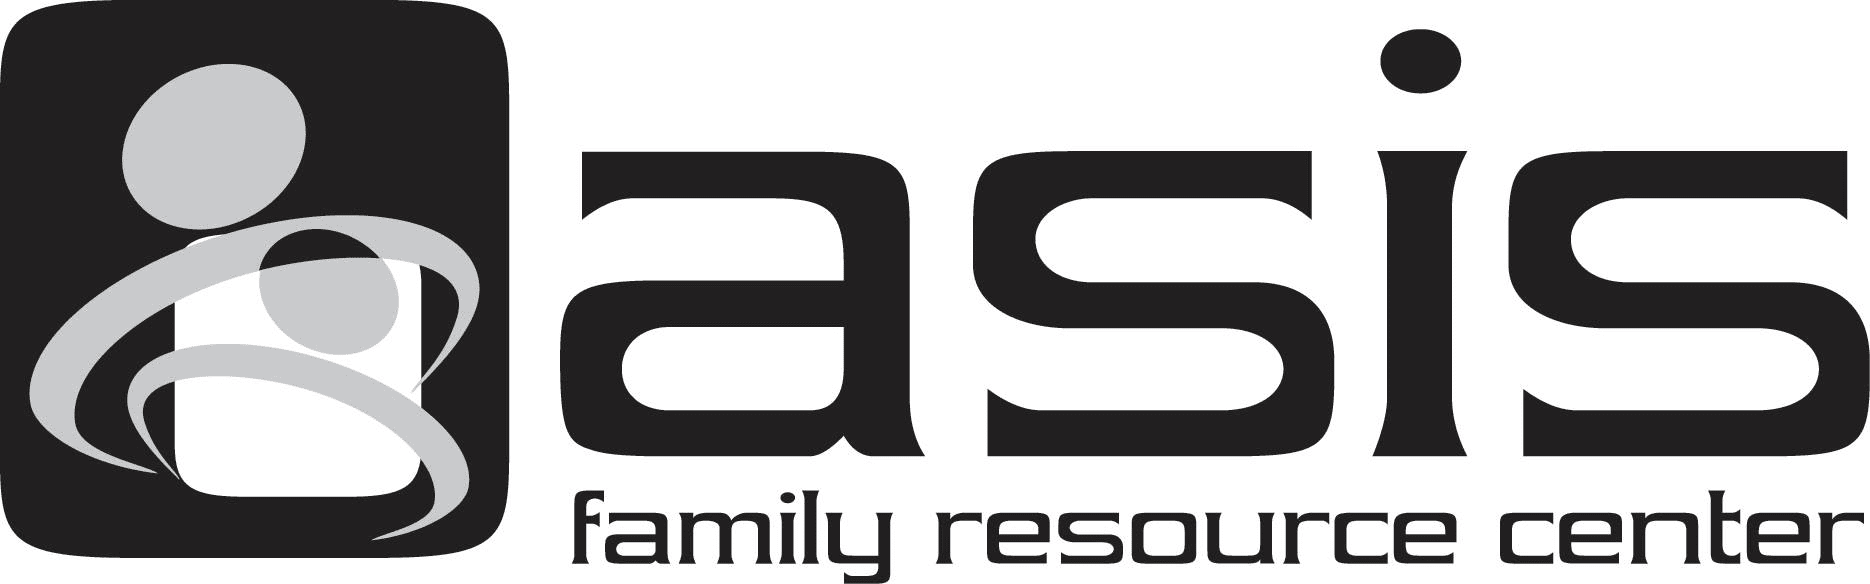 Cadillac Area Oasis Family Resource Center